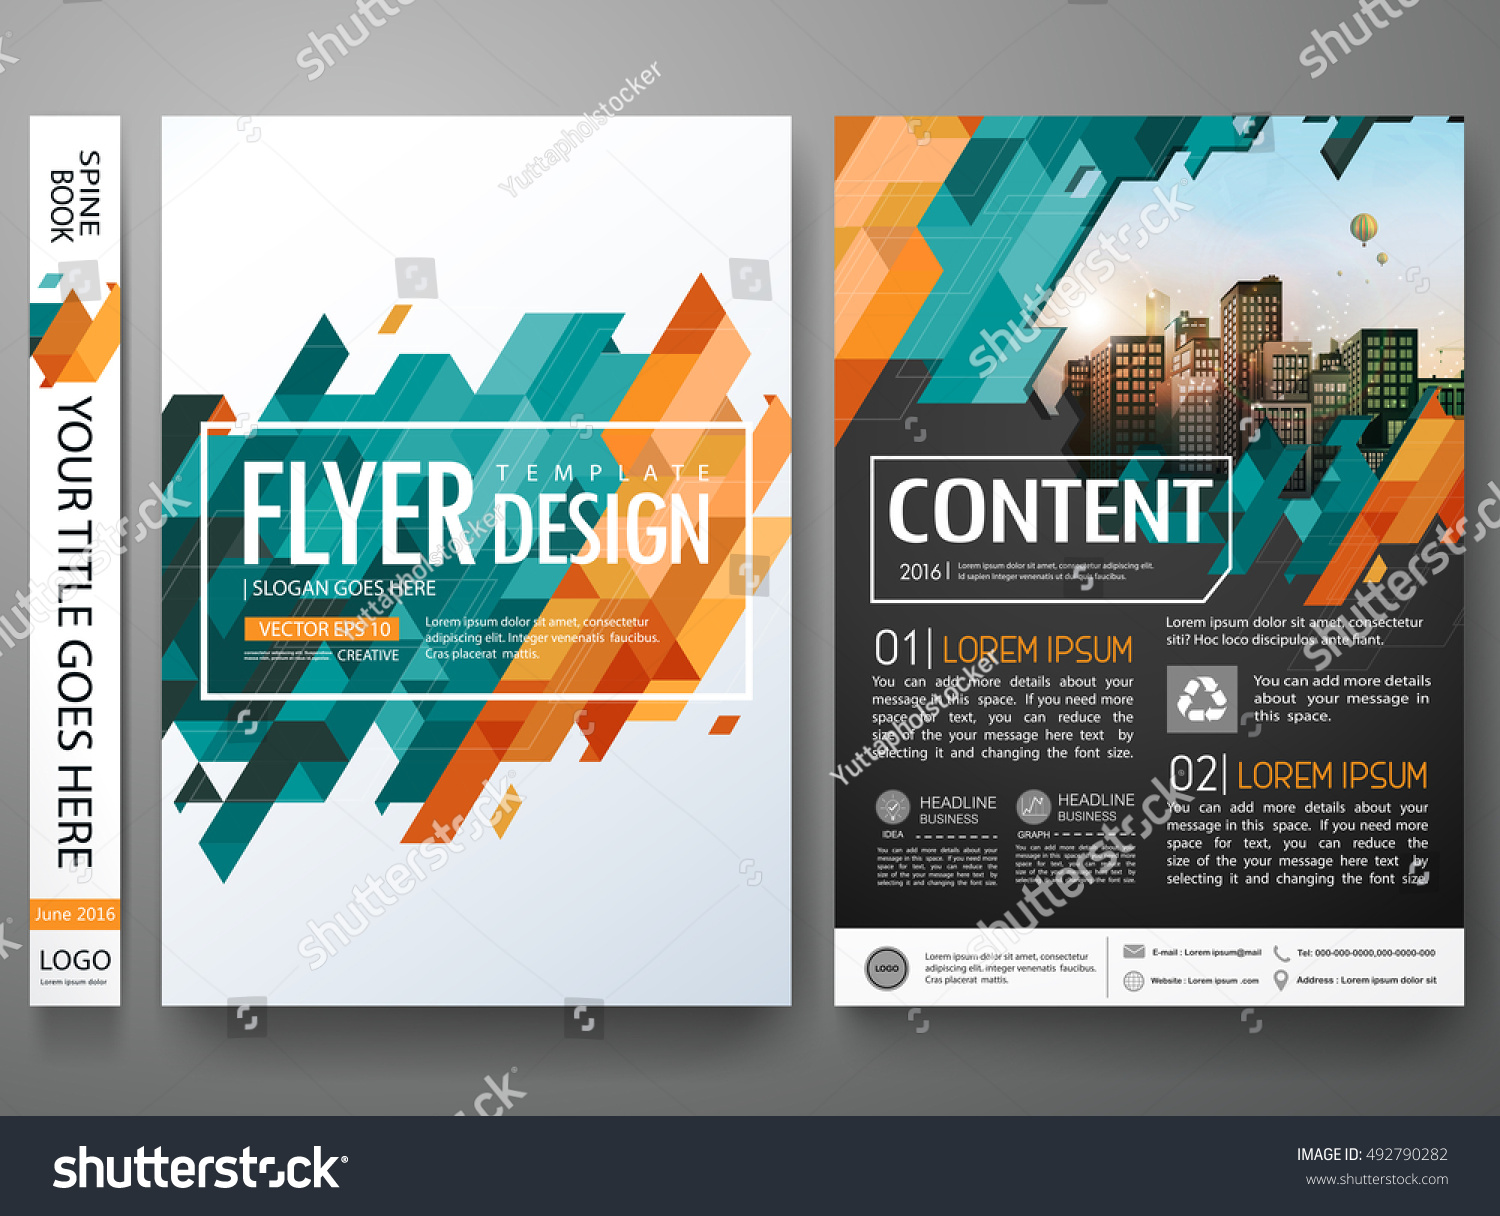 flyers design template vector brochure report stock vector flyers design template vector brochure report business magazine poster abstract green cover book portfolio